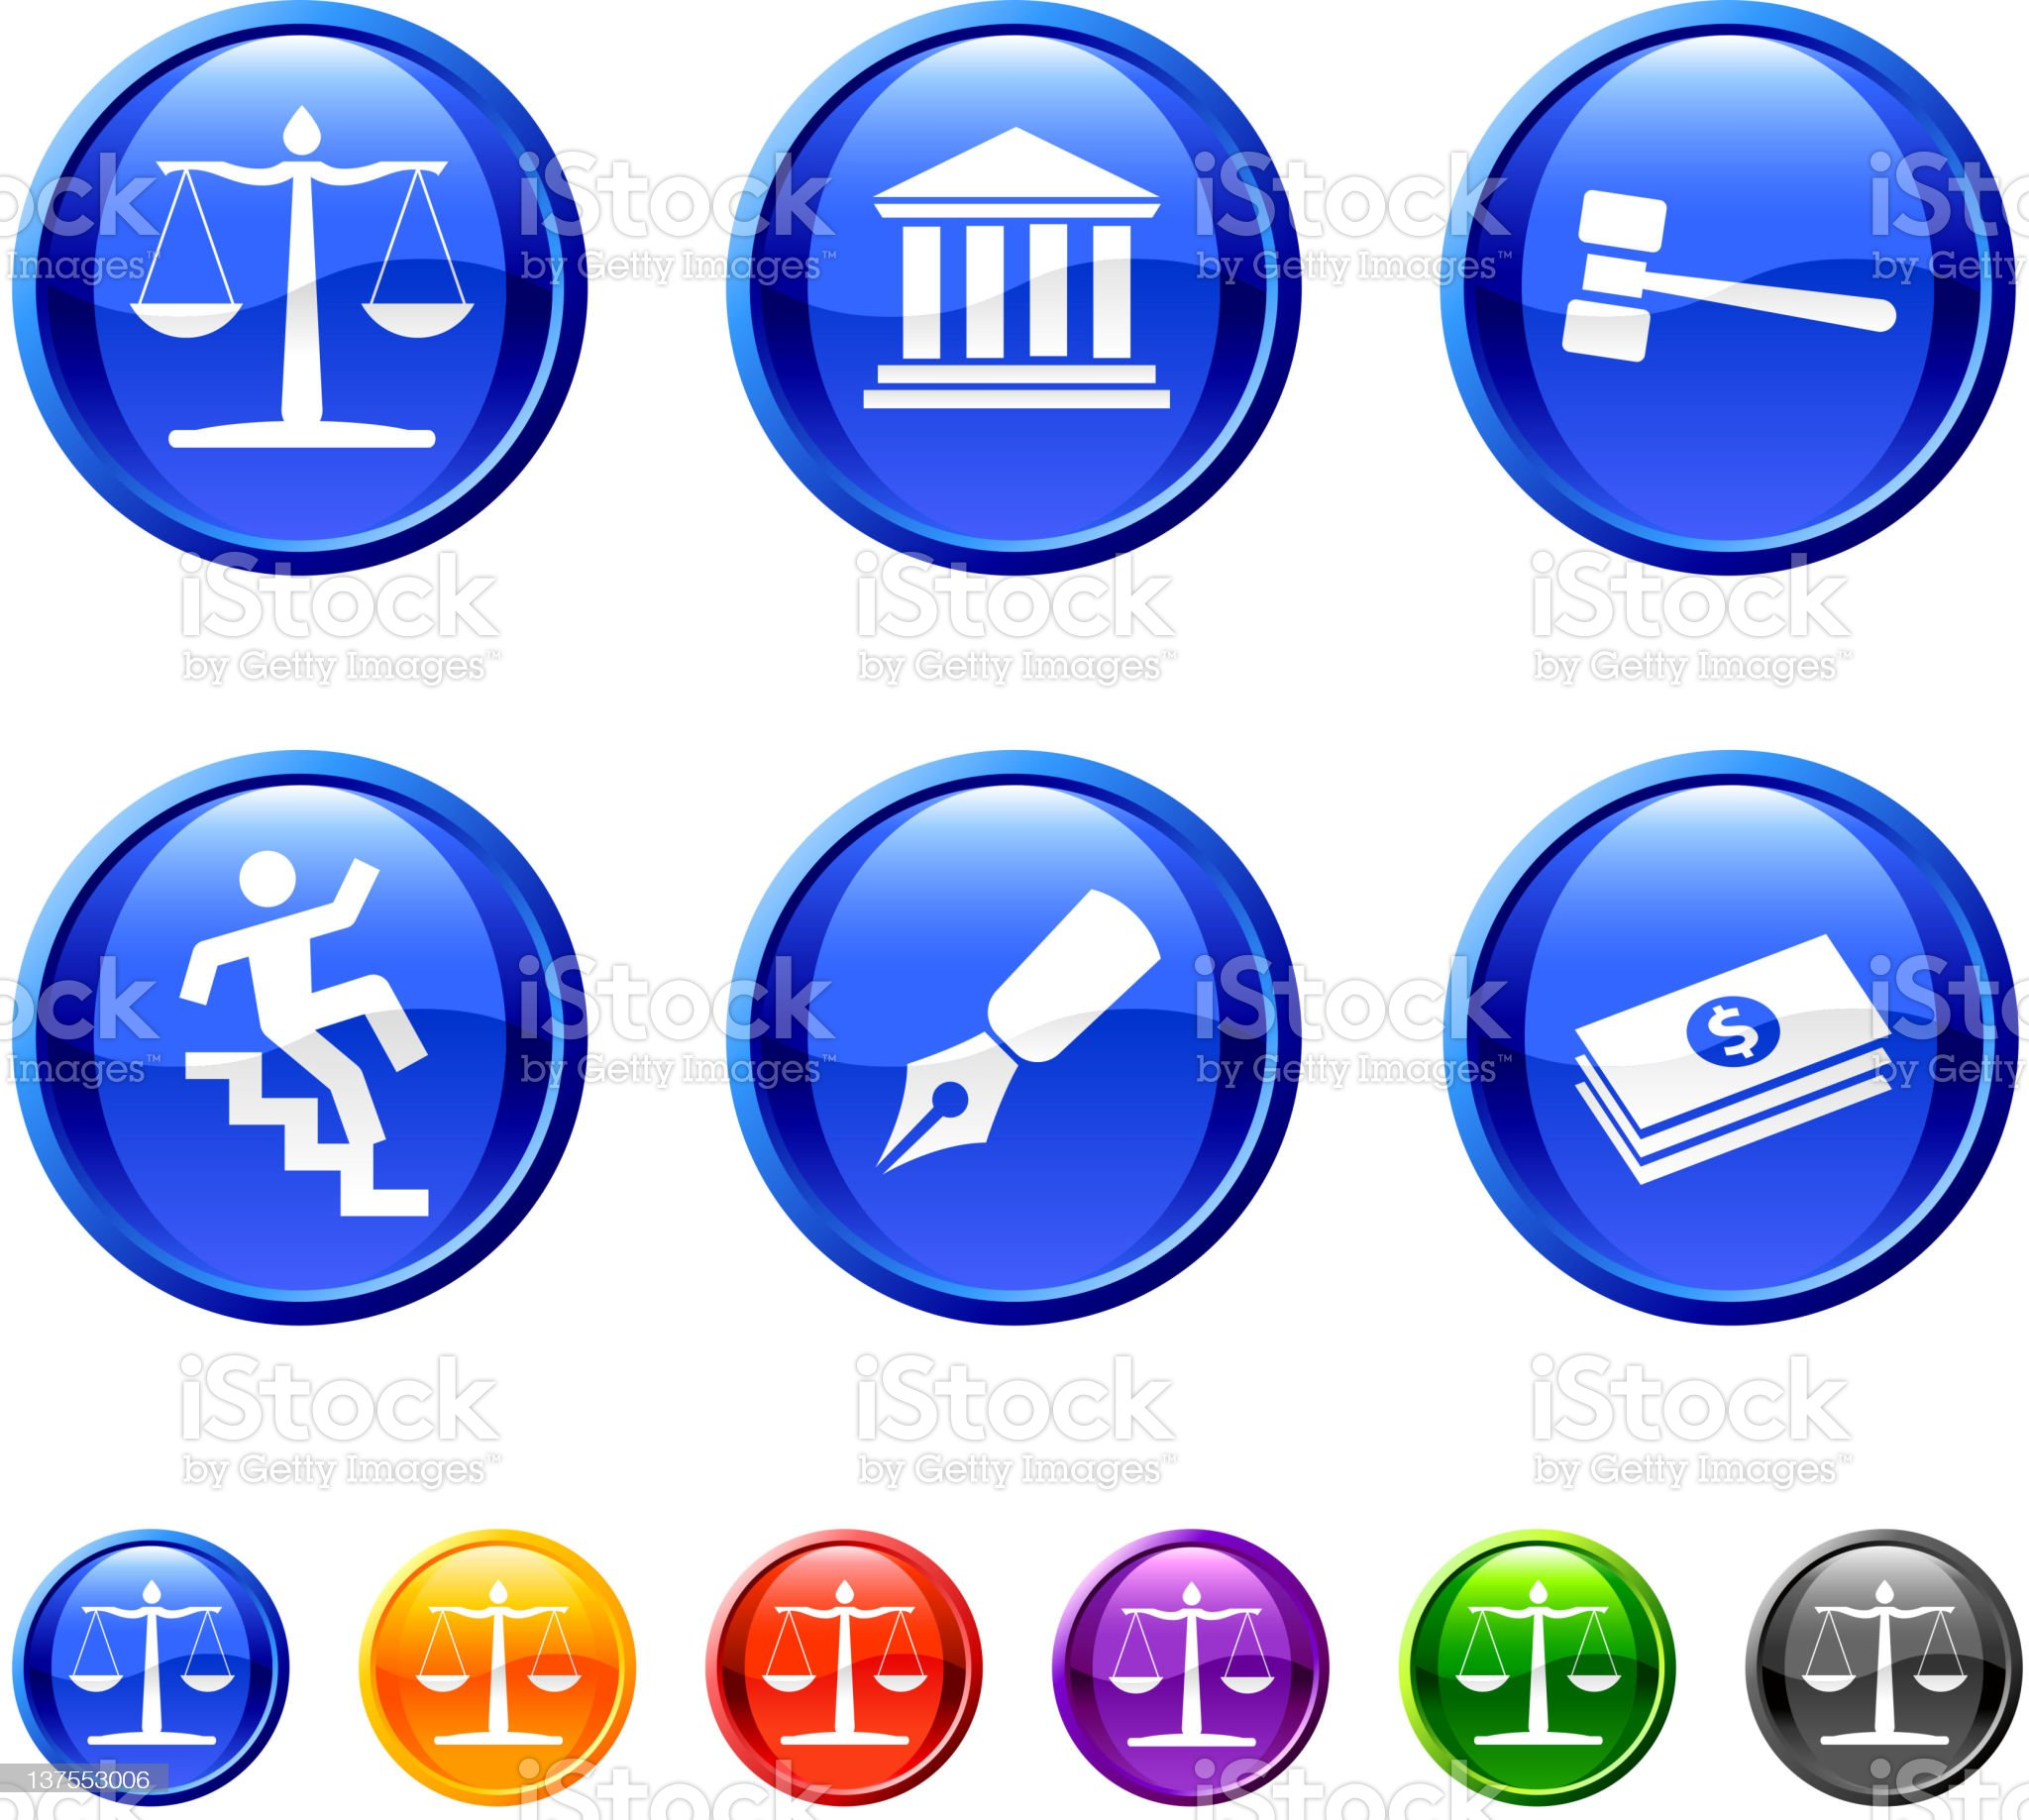 Legal system royalty free vector icon set in 36 colors royalty-free stock vector art